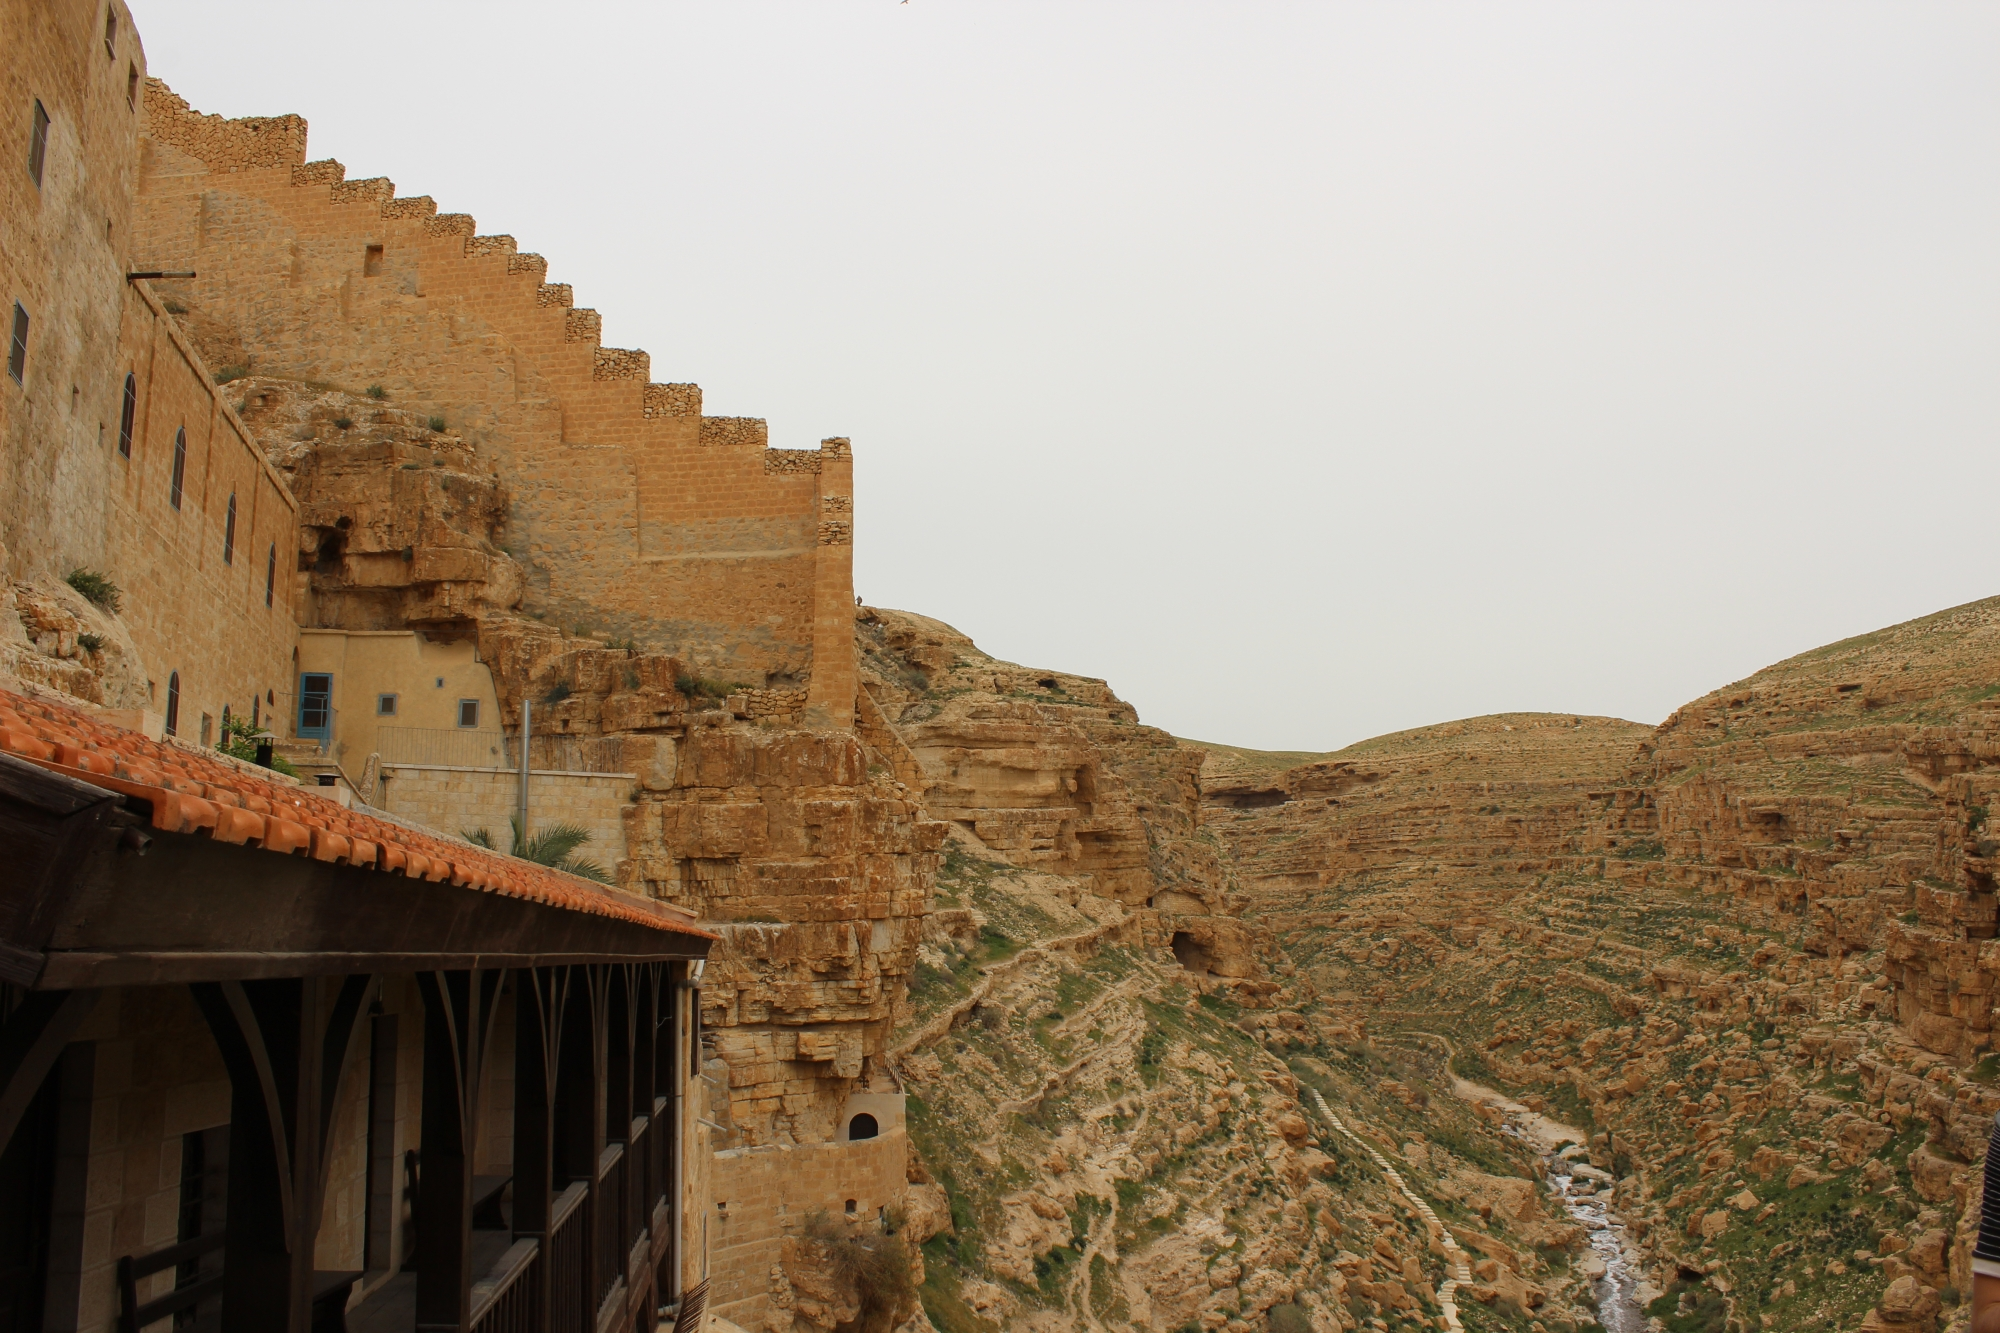 View from a Mar Saba balcony on the Kidron valley